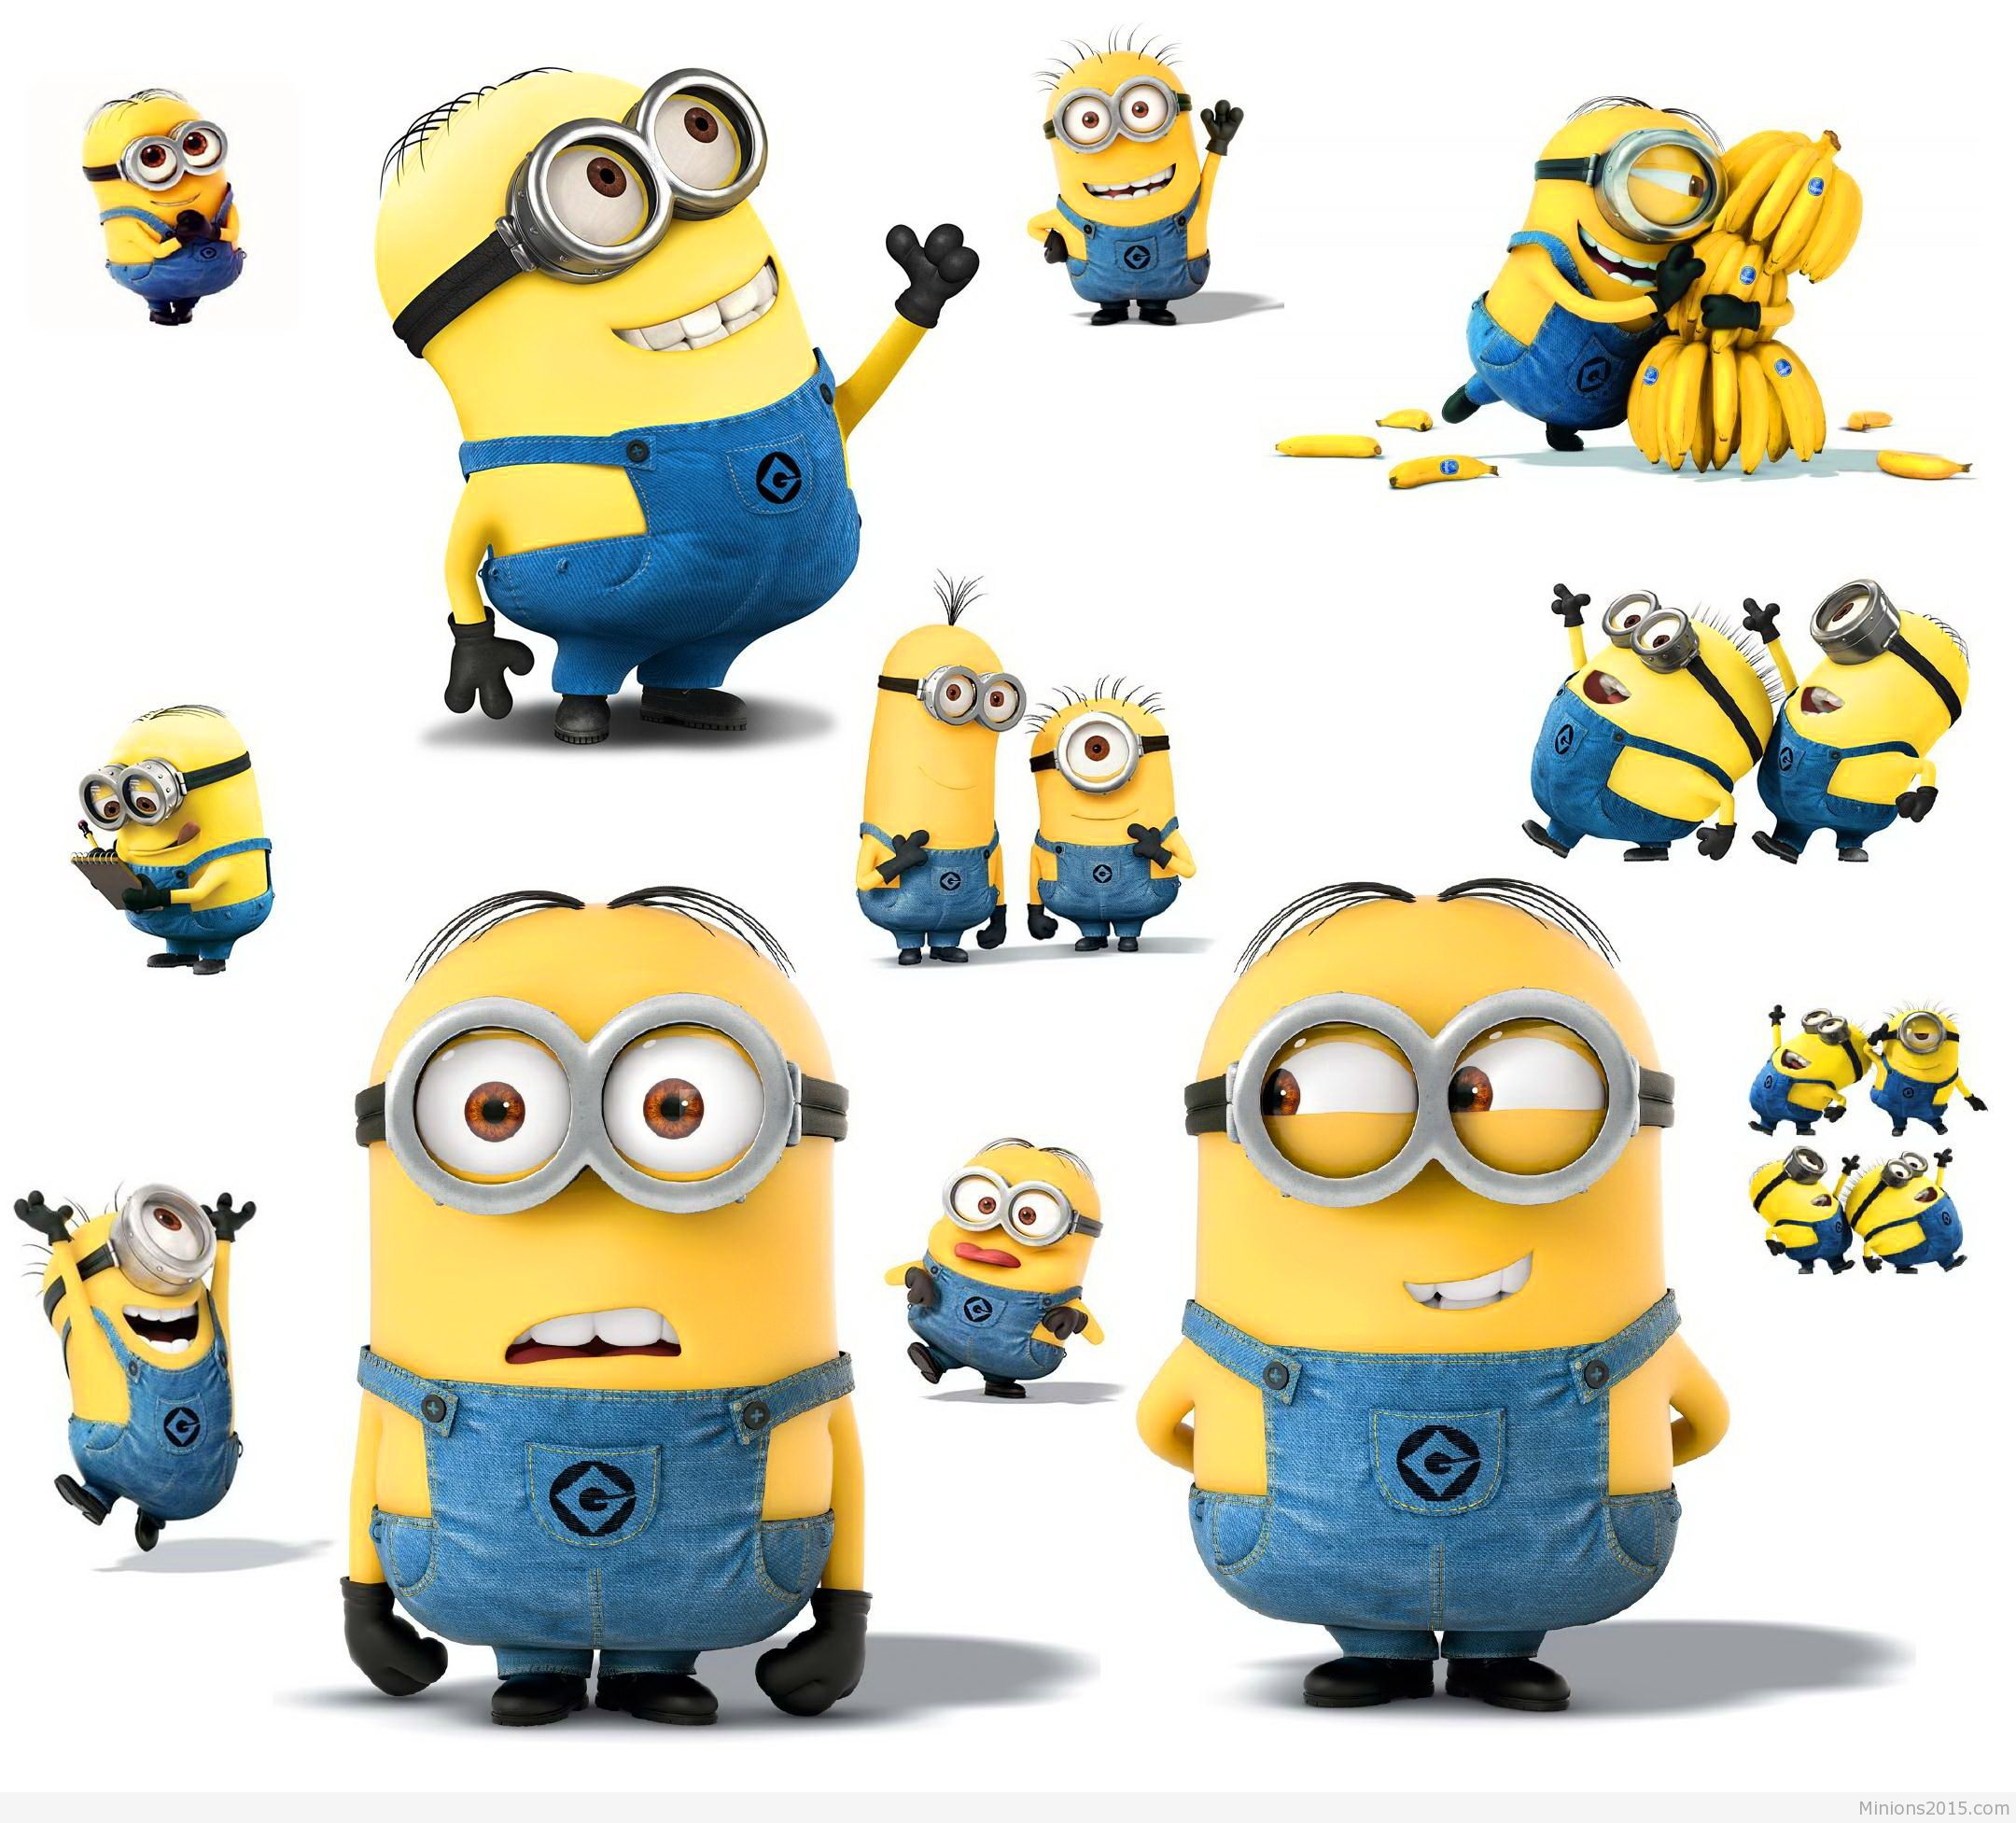 2160x1953 minion_mania_cute_cartoon_despicable_me_hd-wallpaper-1624021